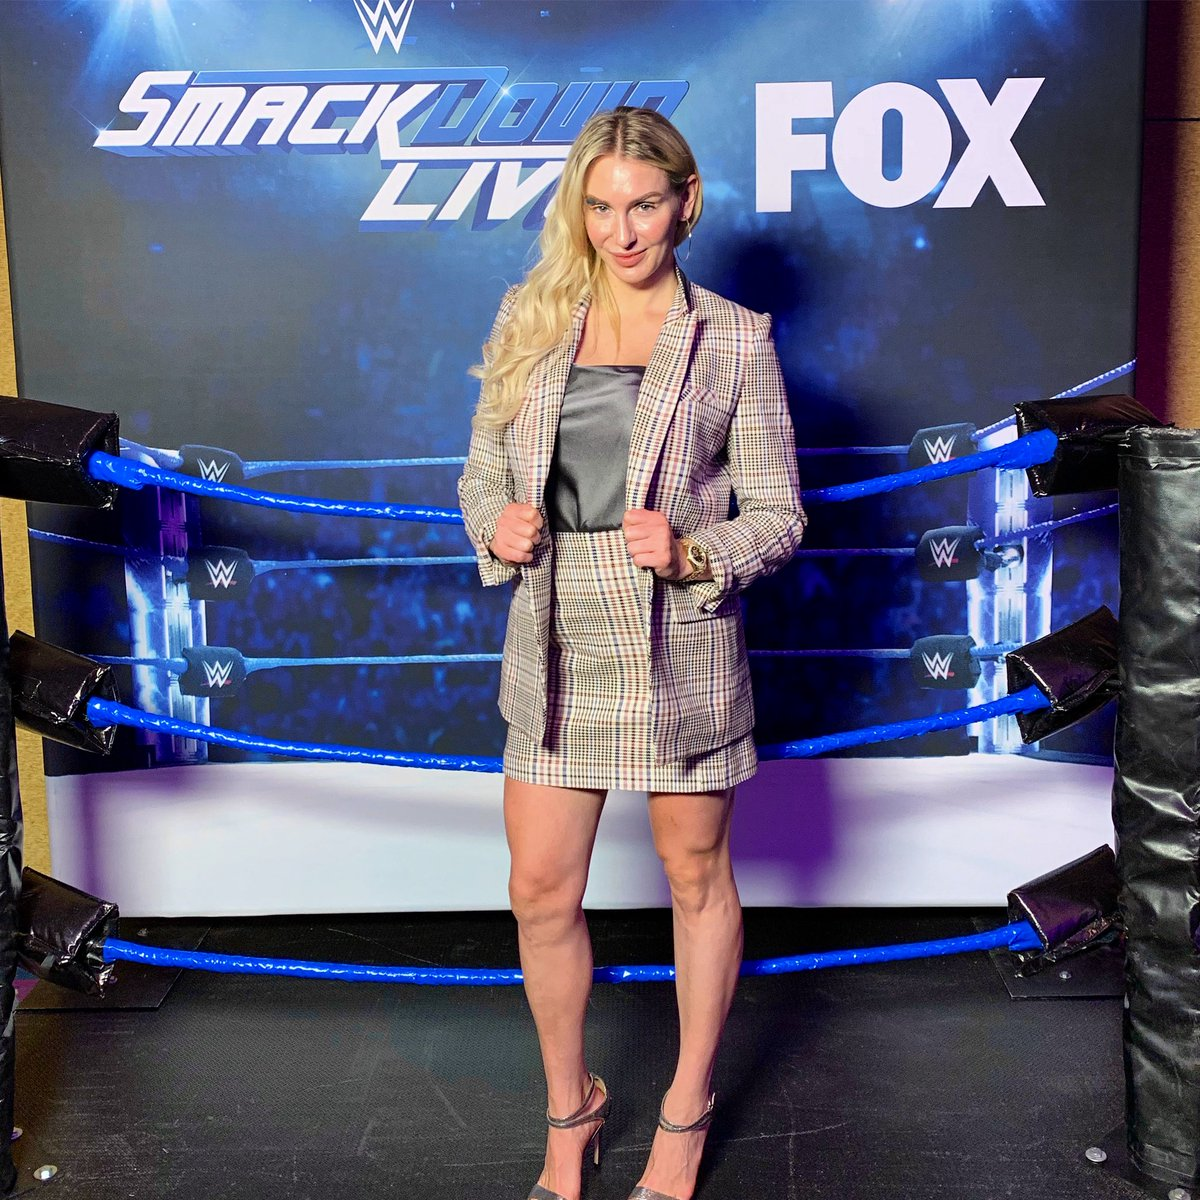 Soon to be 👸🏼 of @FOXTV